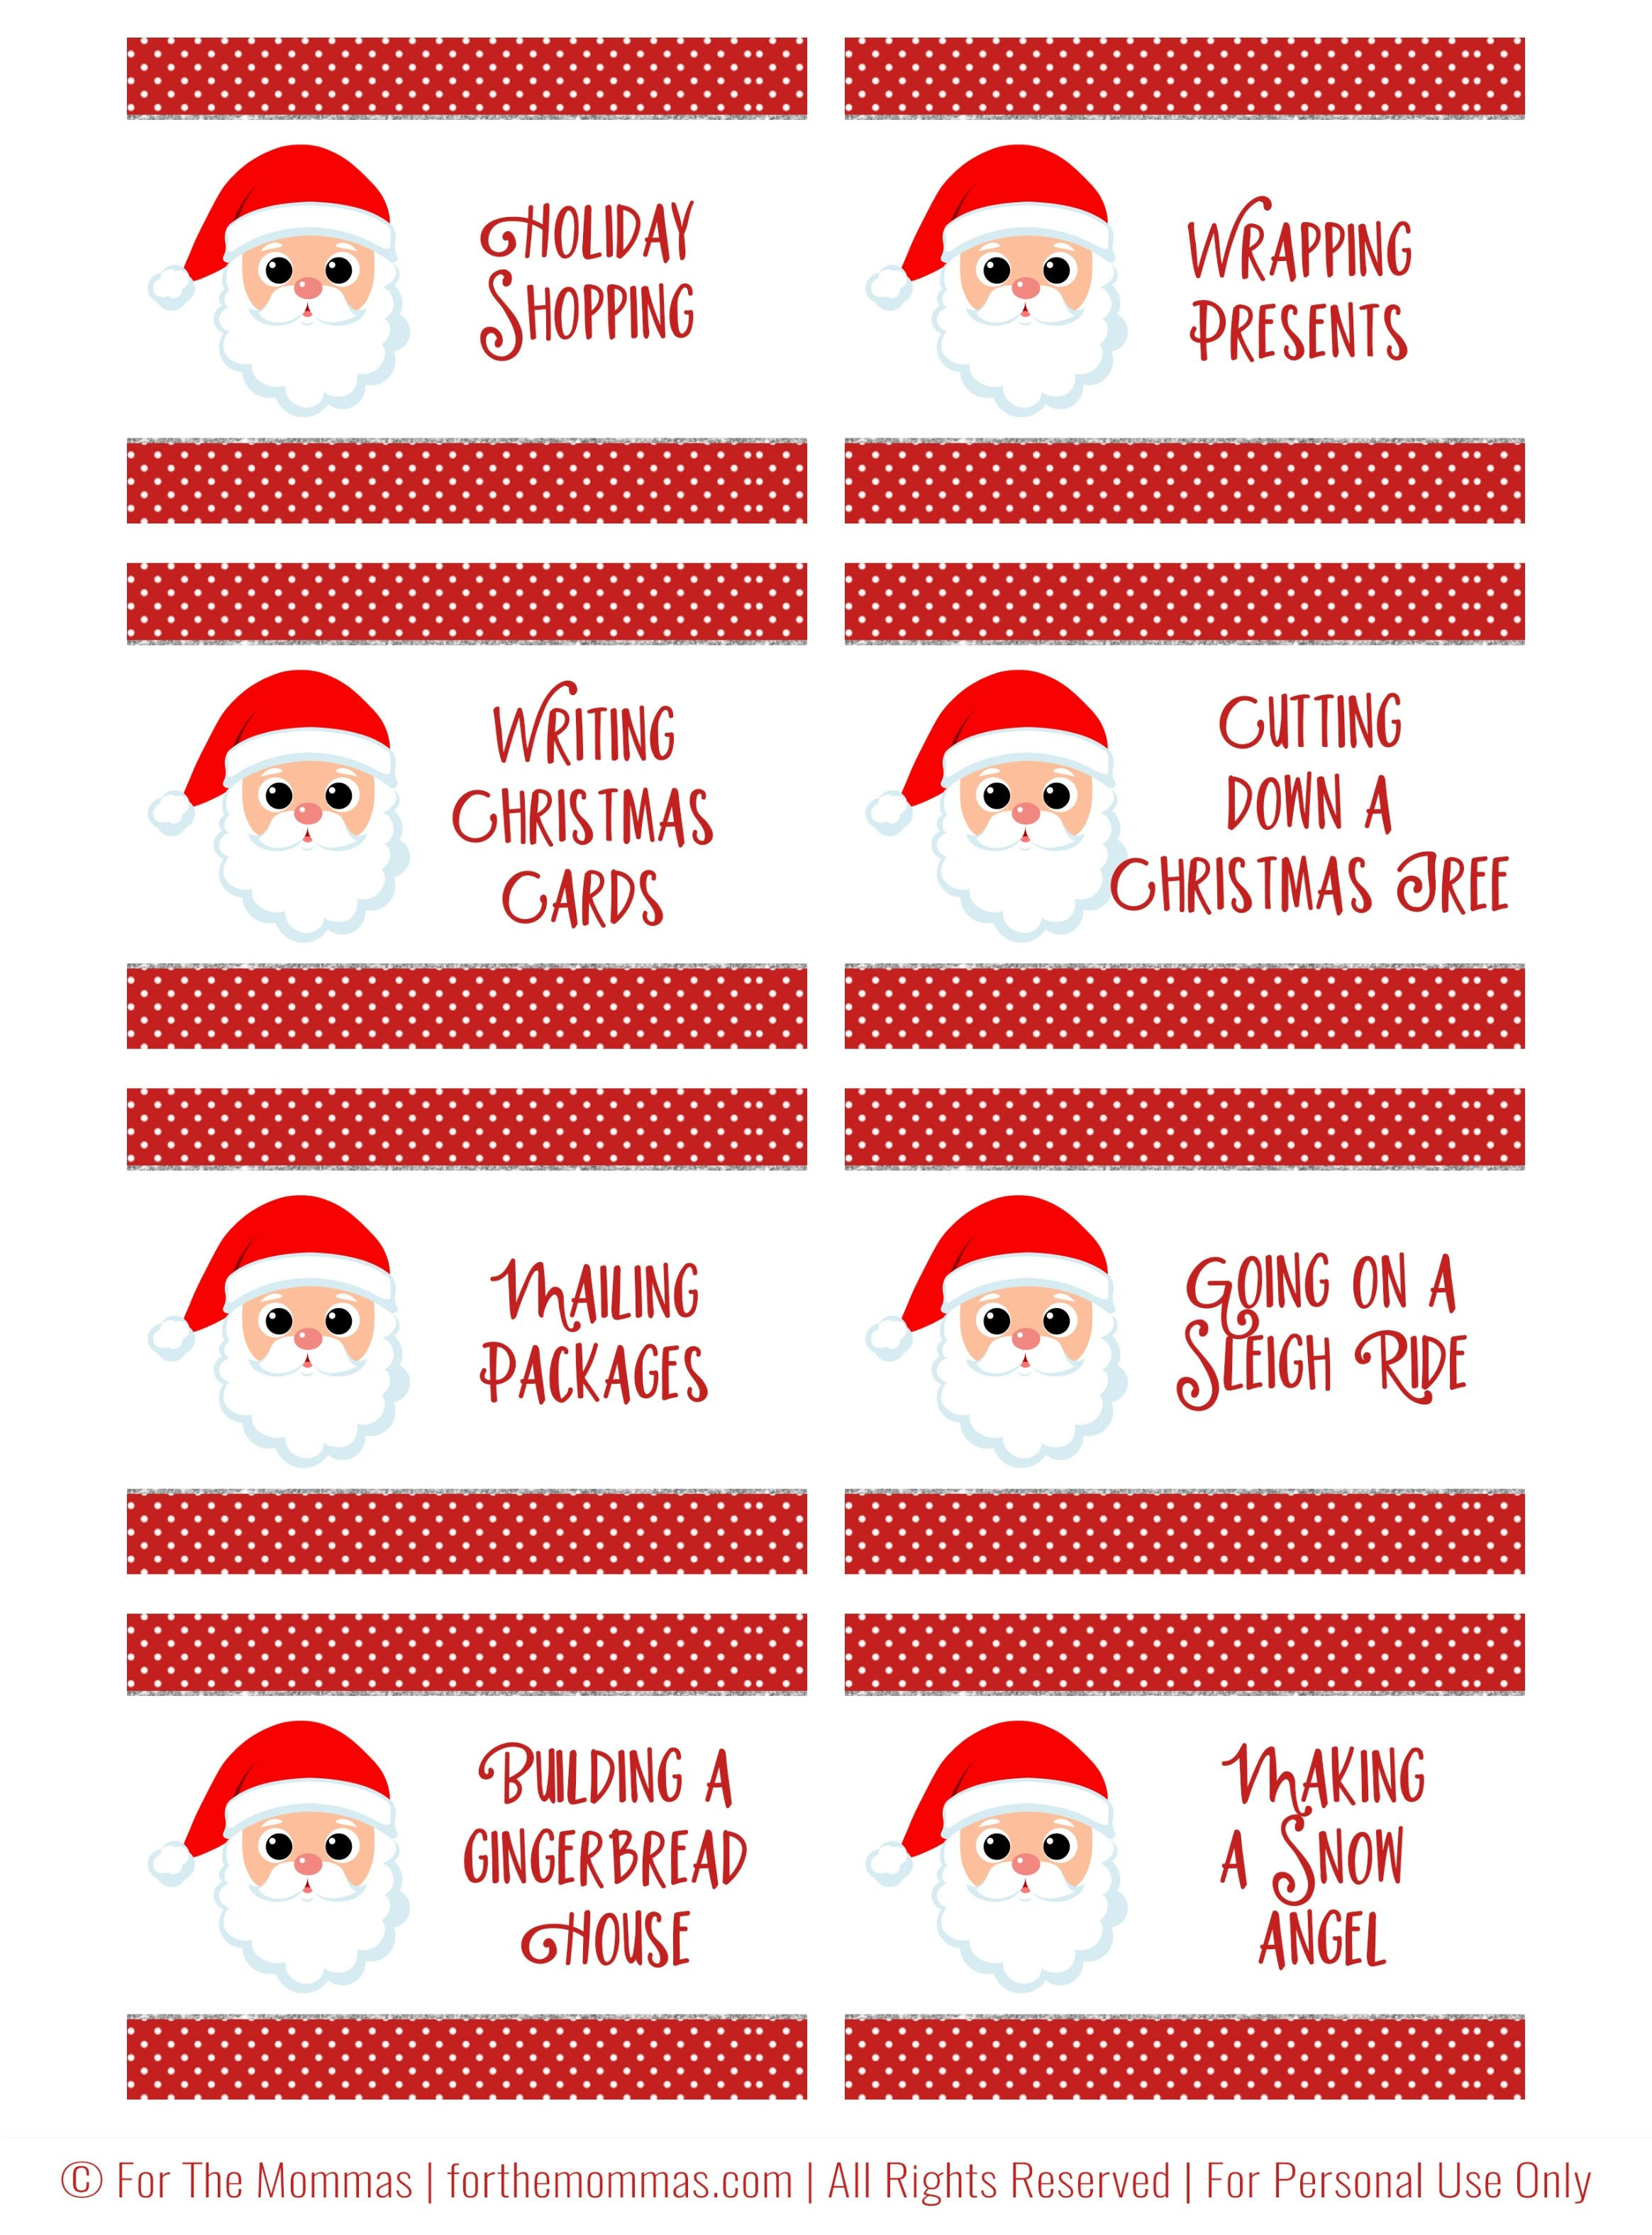 Christmas Charades Free Printable - Start A New Holiday Tradition - Ftm - Free Printable Christmas Charades Cards